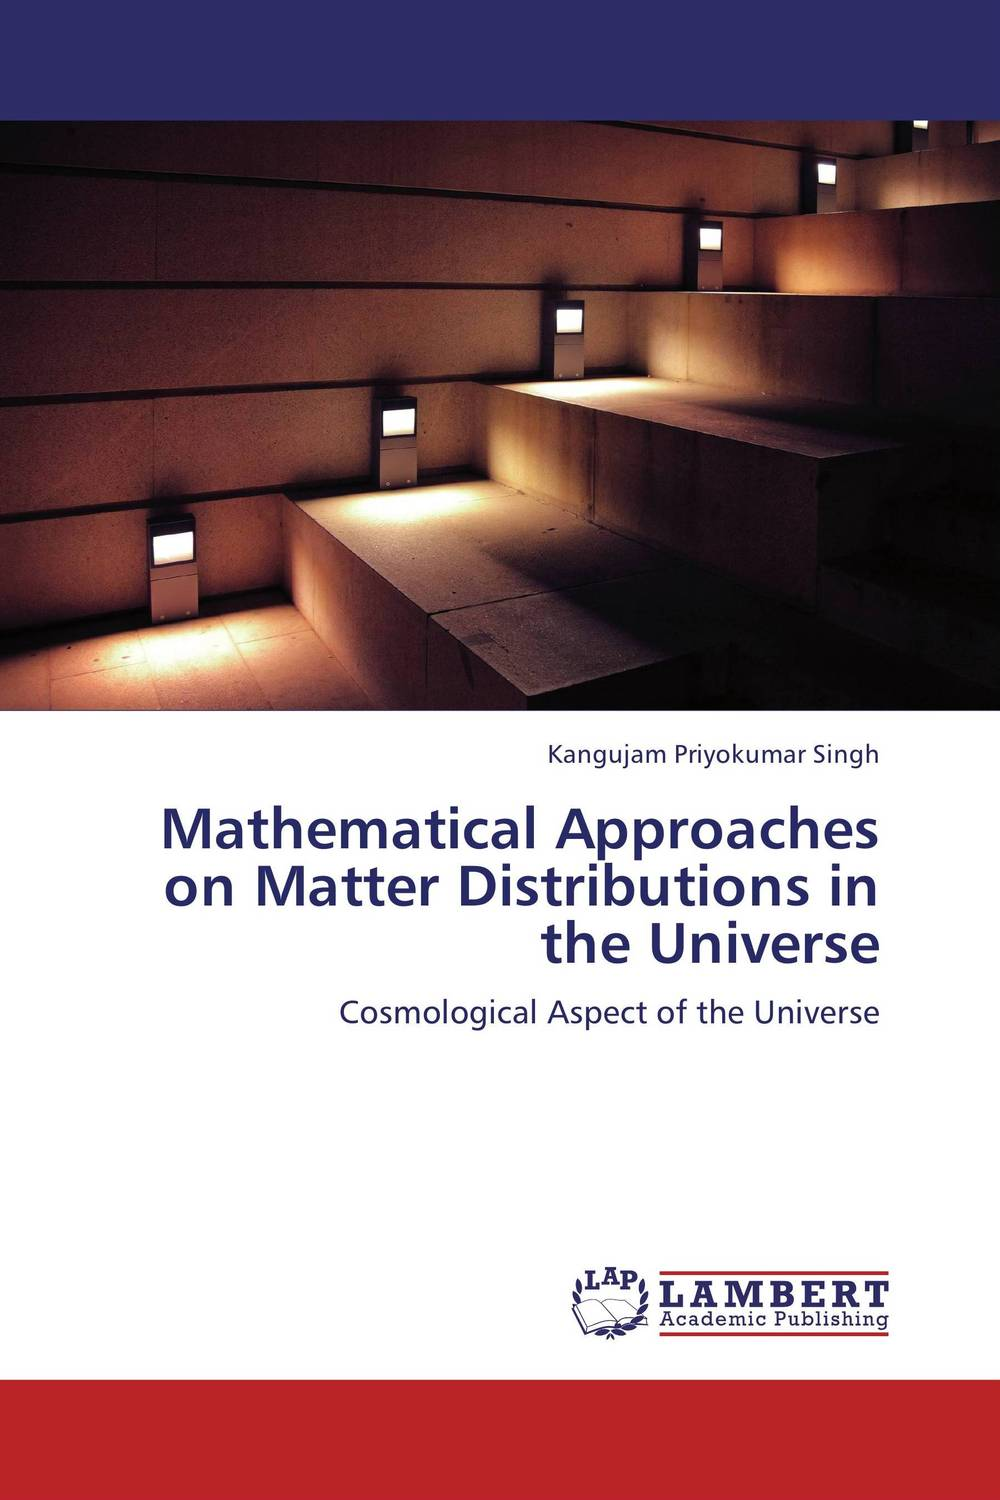 Mathematical Approaches on Matter Distributions in the Universe masters of the universe